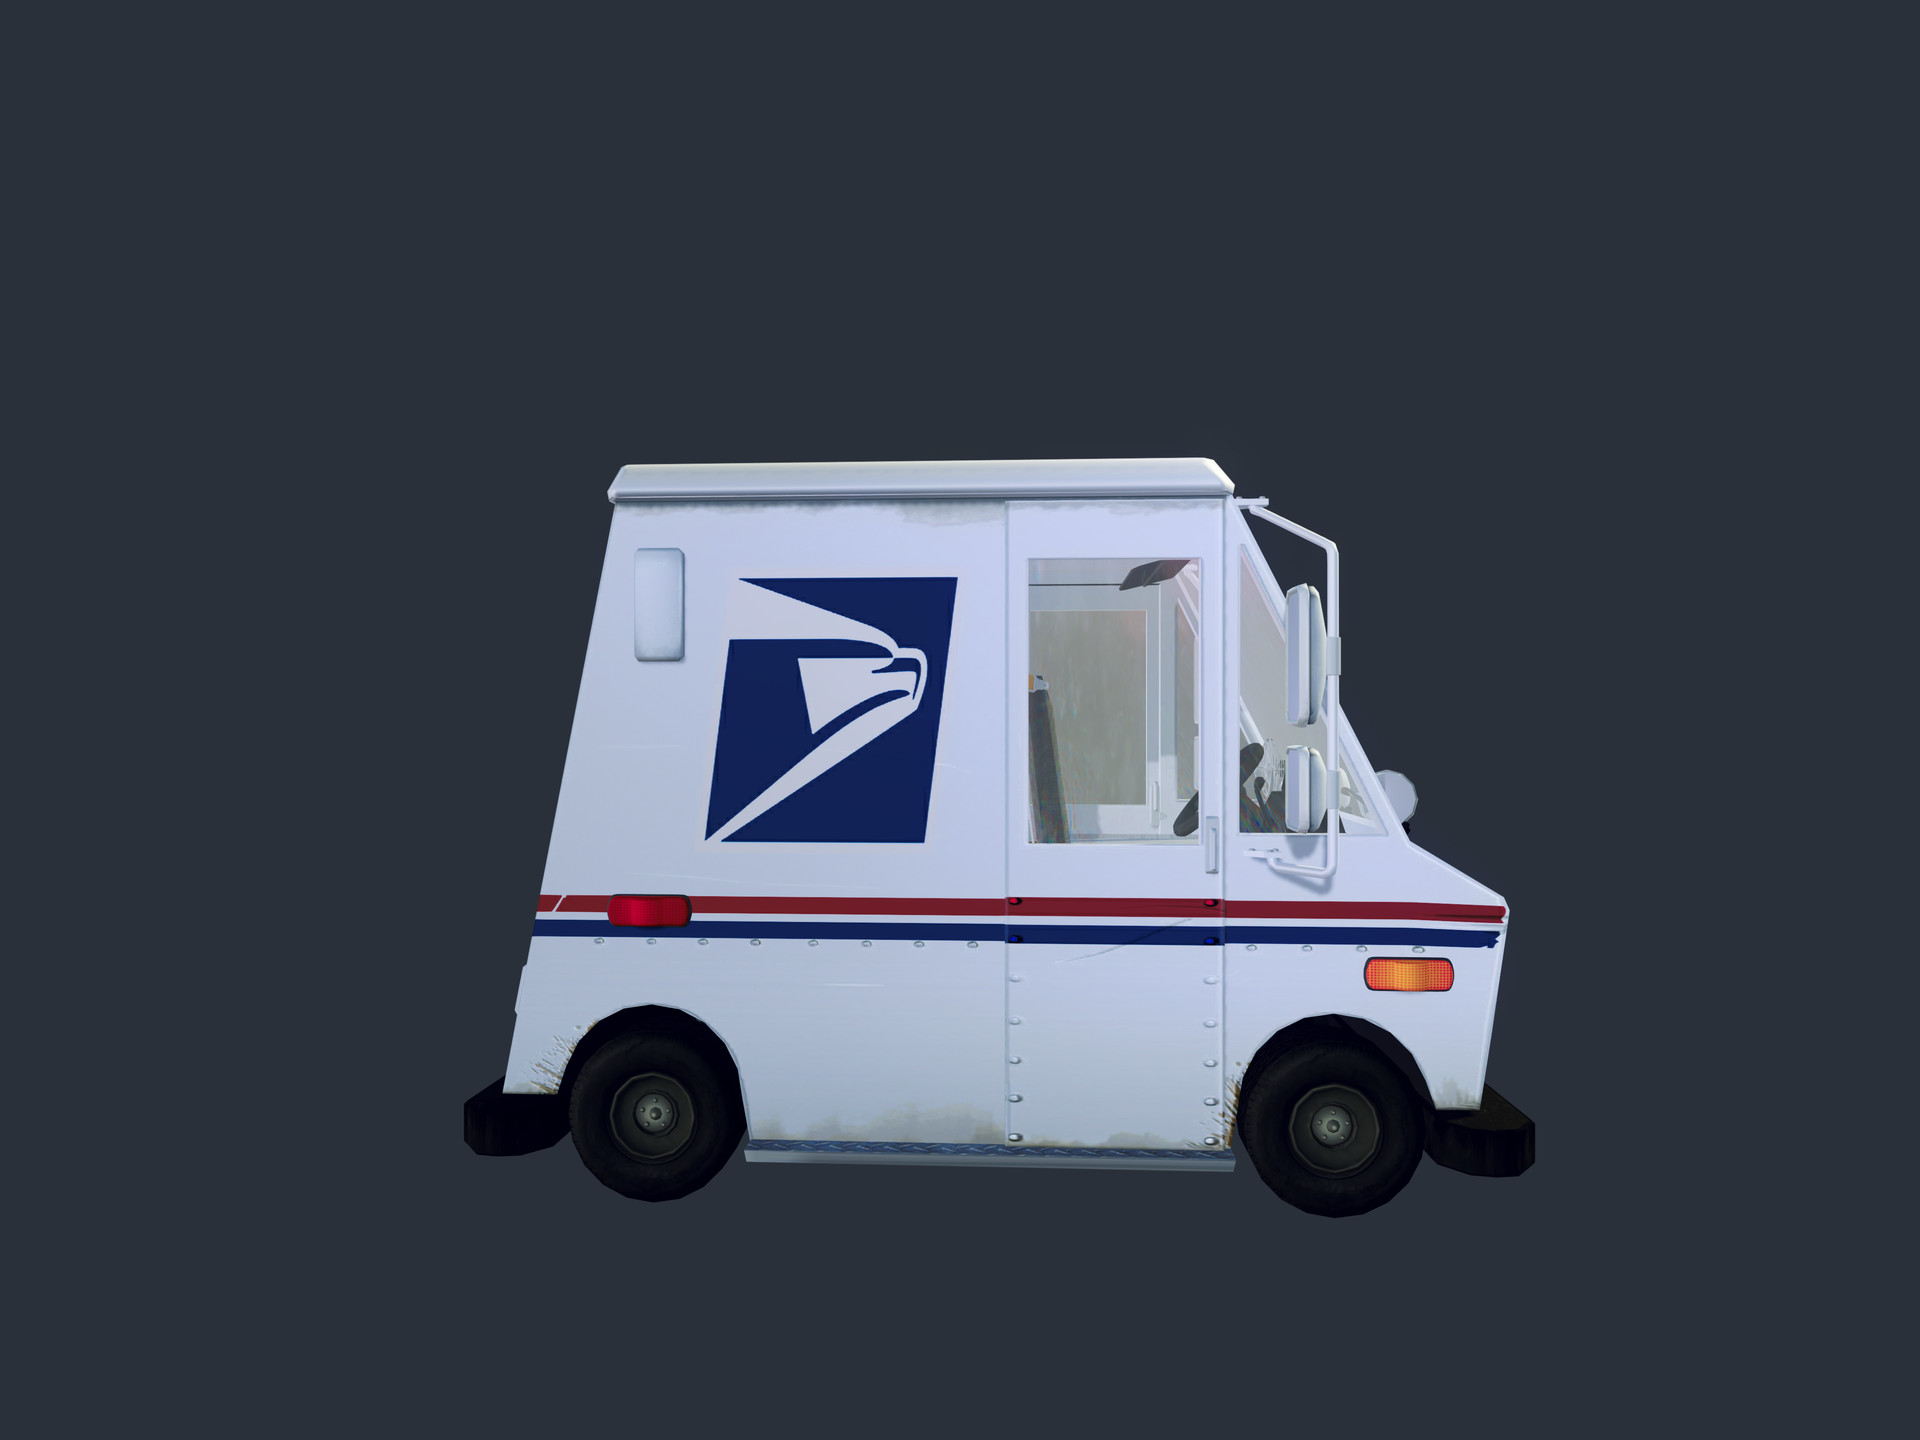 ArtStation - USPS LLV, Richard Hester